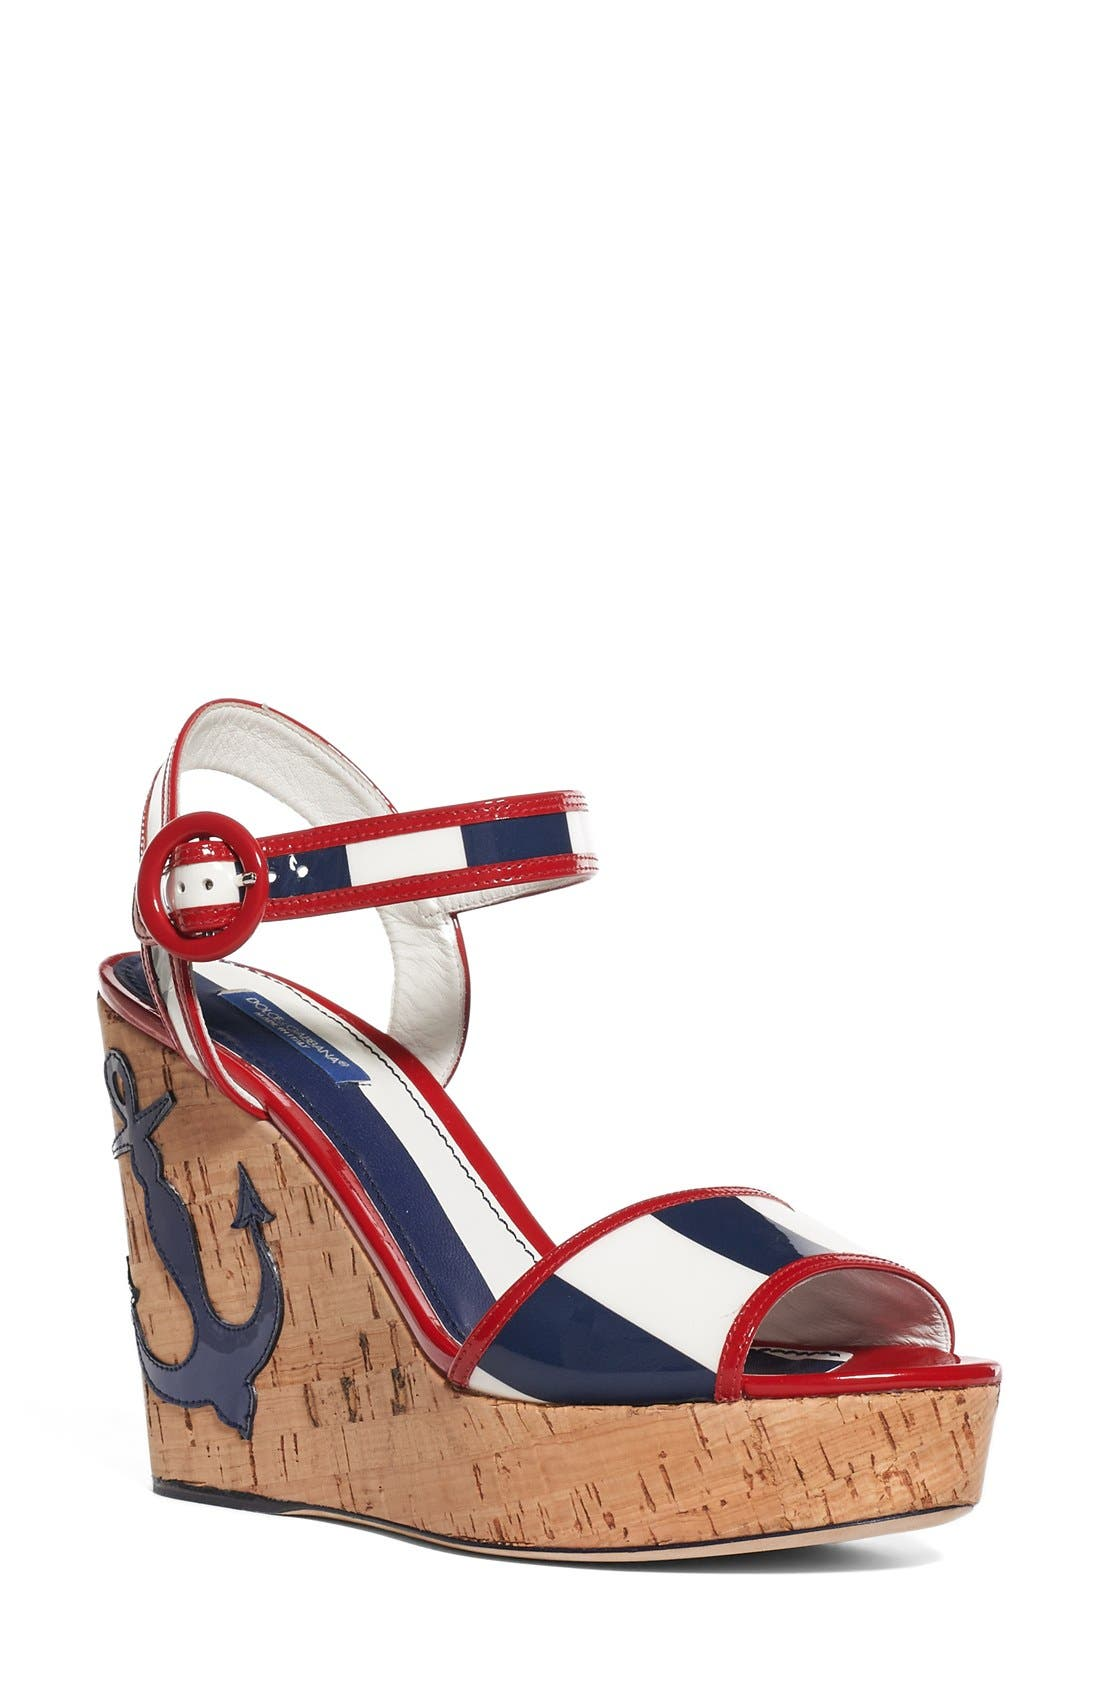 DOLCE&GABBANA Nautical Wedge Sandal